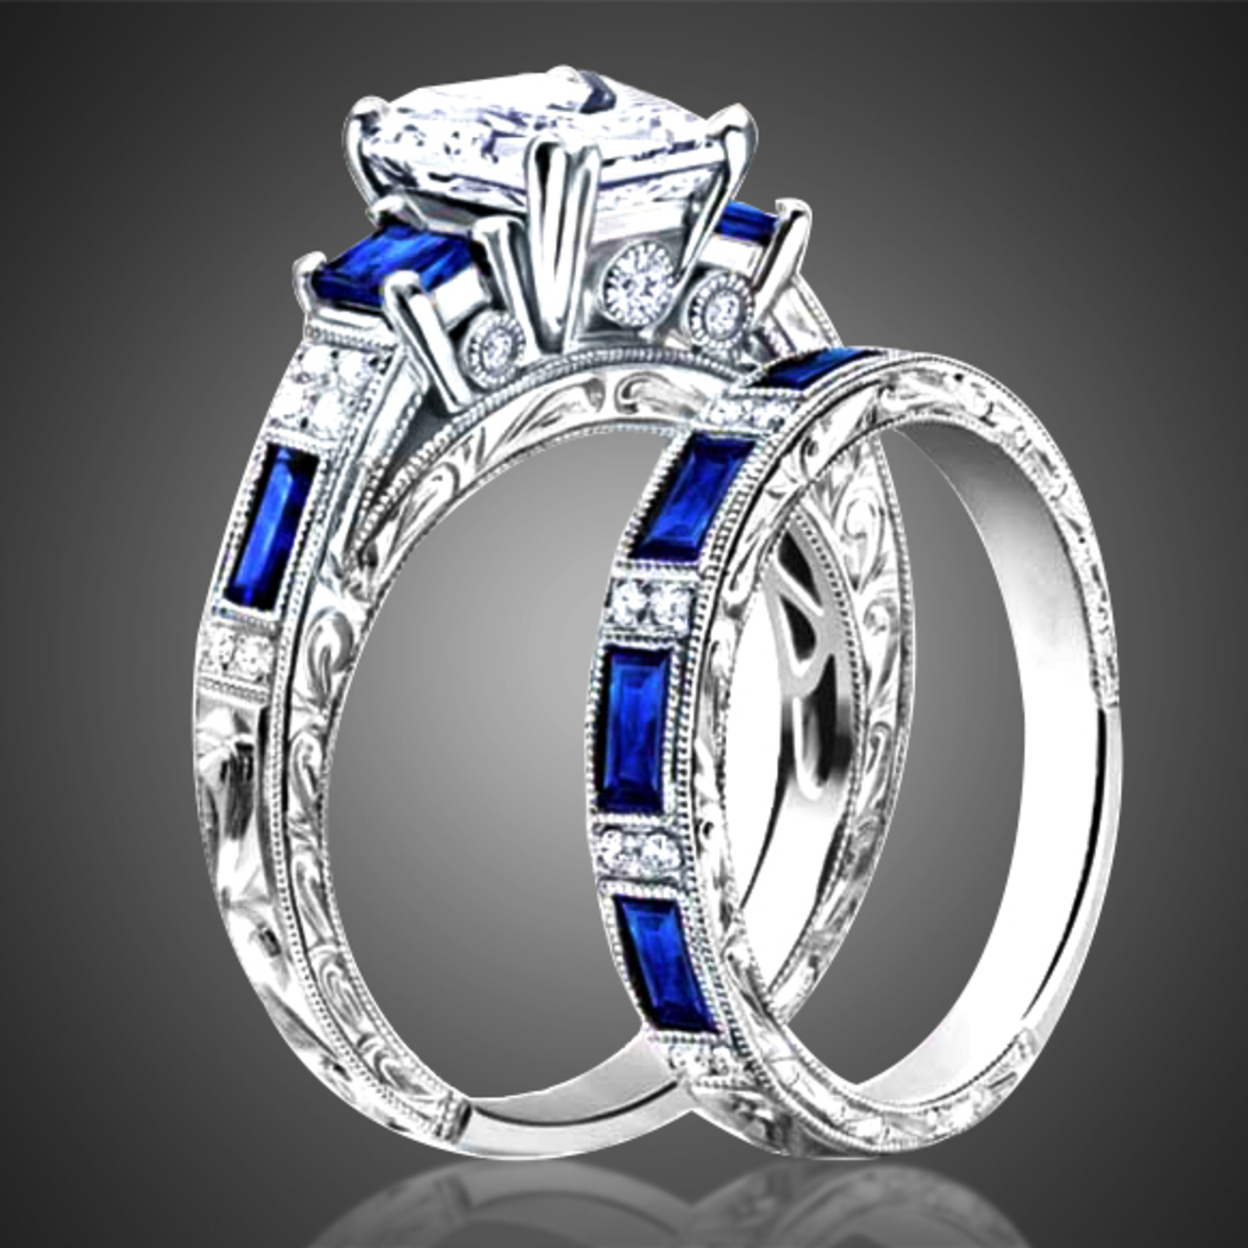 4.00 Cttw Emerald Cut Sapphire Ring And Band Set 6